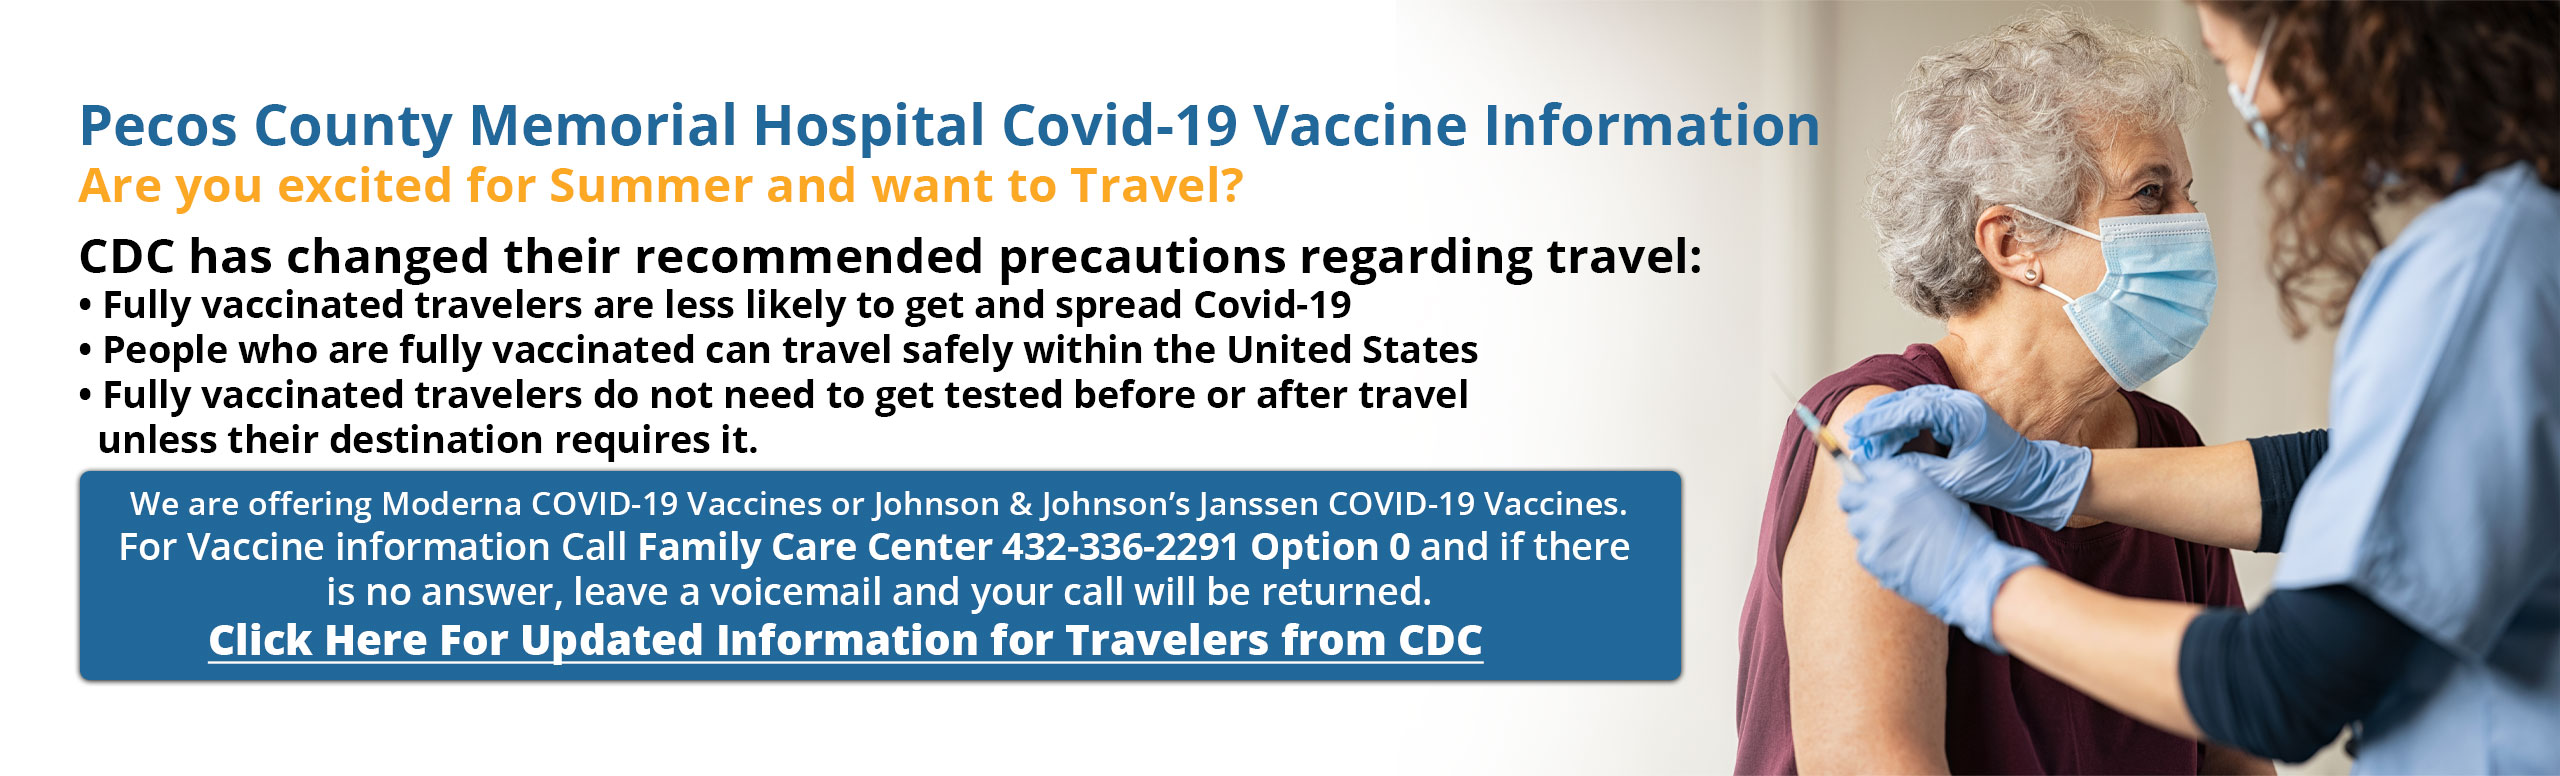 Pecos County Memorial Hospital Covid-19 Vaccine Information  Are you excited for Summer and want to Travel?  CDC has changed their recommended precautions regarding travel: • Fully vaccinated travelers are less likely to get and spread Covid-19 • People who are fully vaccinated can travel safely within the United States • Fully vaccinated travelers do not need to get tested before or after travel    unless their destination requires it.  We are offering Moderna COVID-19 Vaccines or Johnson & Johnson's Janssen COVID-19 Vaccines. For Vaccine information Call 432-336-4230 and if there is no answer, leave a voicemail and your call will be returned.  Click Here For Updated Information for Travelers from CDC